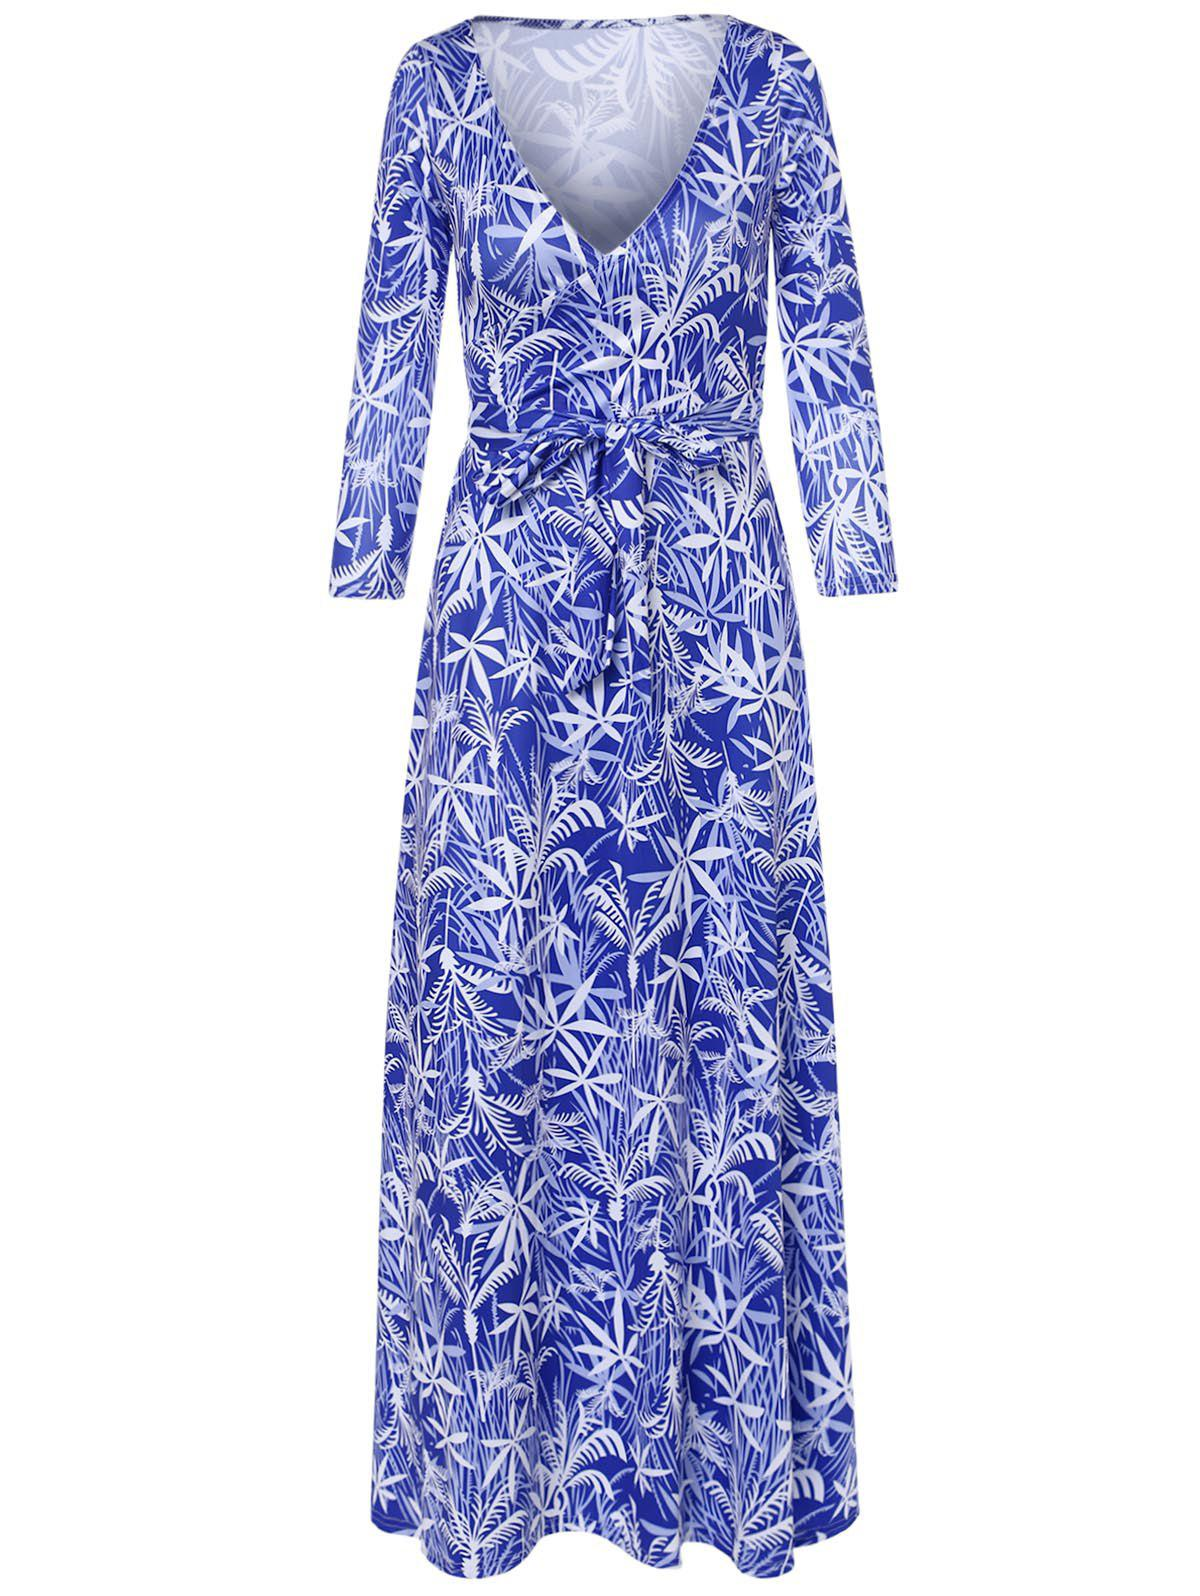 Leaf Print Plunging Neck Dress - SAPPHIRE BLUE S